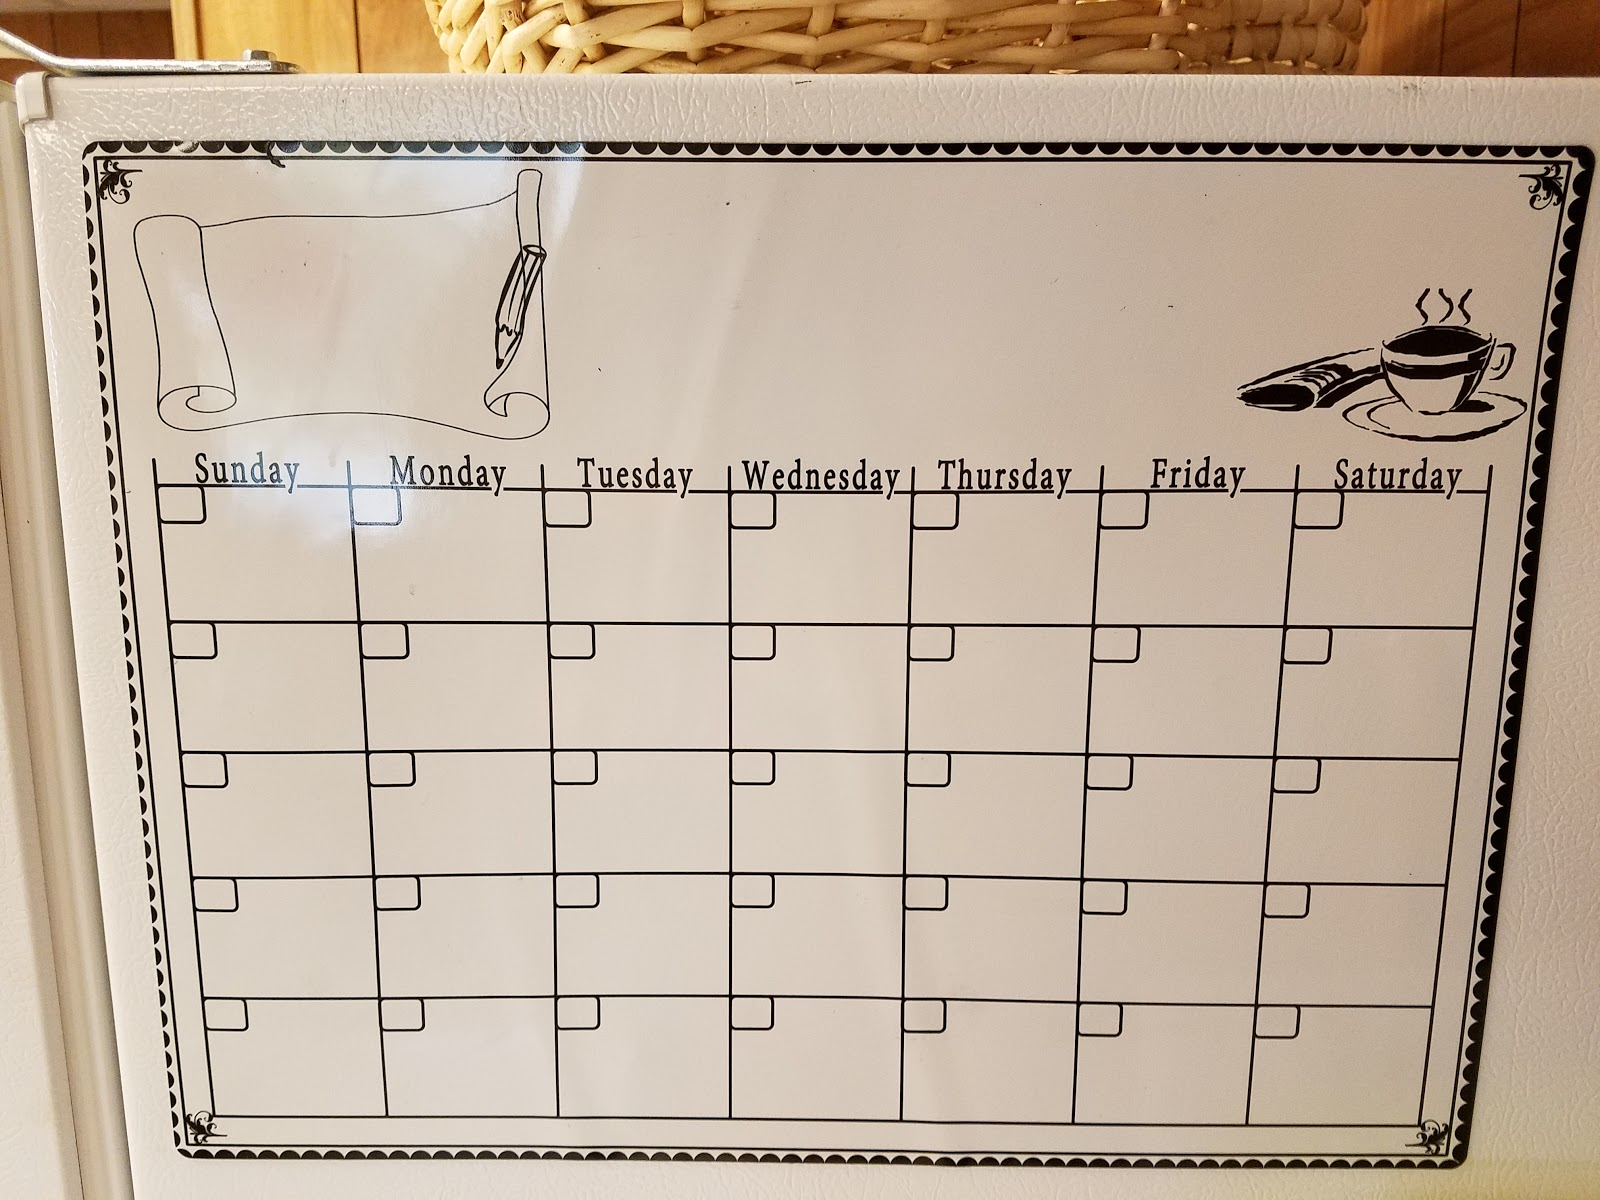 Magnetic Monthly Calendar For Refrigerator : Dry erase calendar fridge monthly calendar magnet mocha